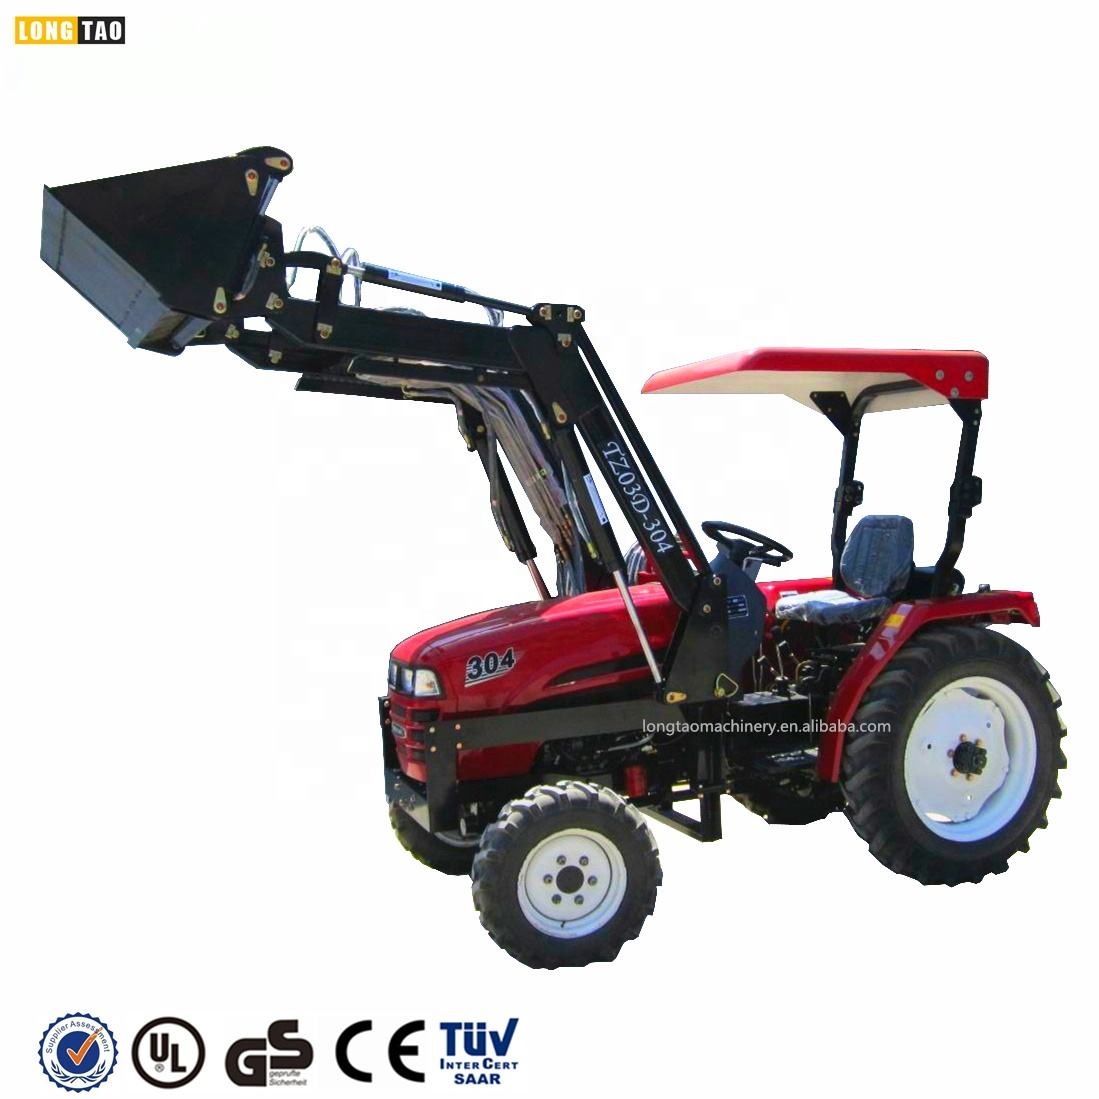 <span class=keywords><strong>30hp</strong></span> 4wd <span class=keywords><strong>tracteur</strong></span> <span class=keywords><strong>agricole</strong></span> avec chargeur frontal